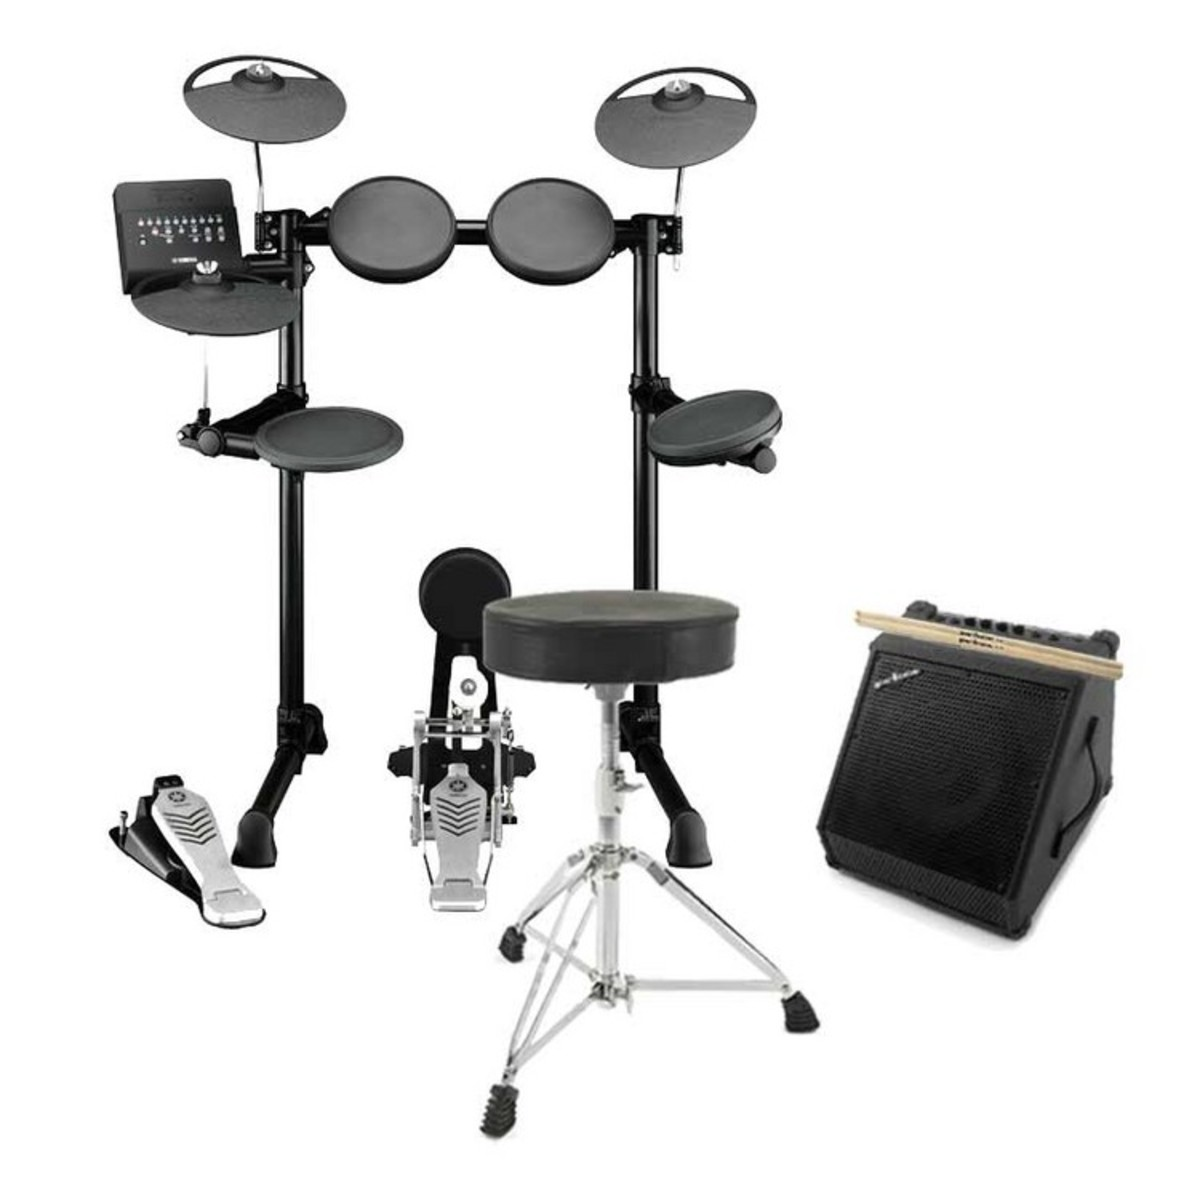 Yamaha dtx450k electronic drum kit with amp stool and for Yamaha dtx450k electronic drum set